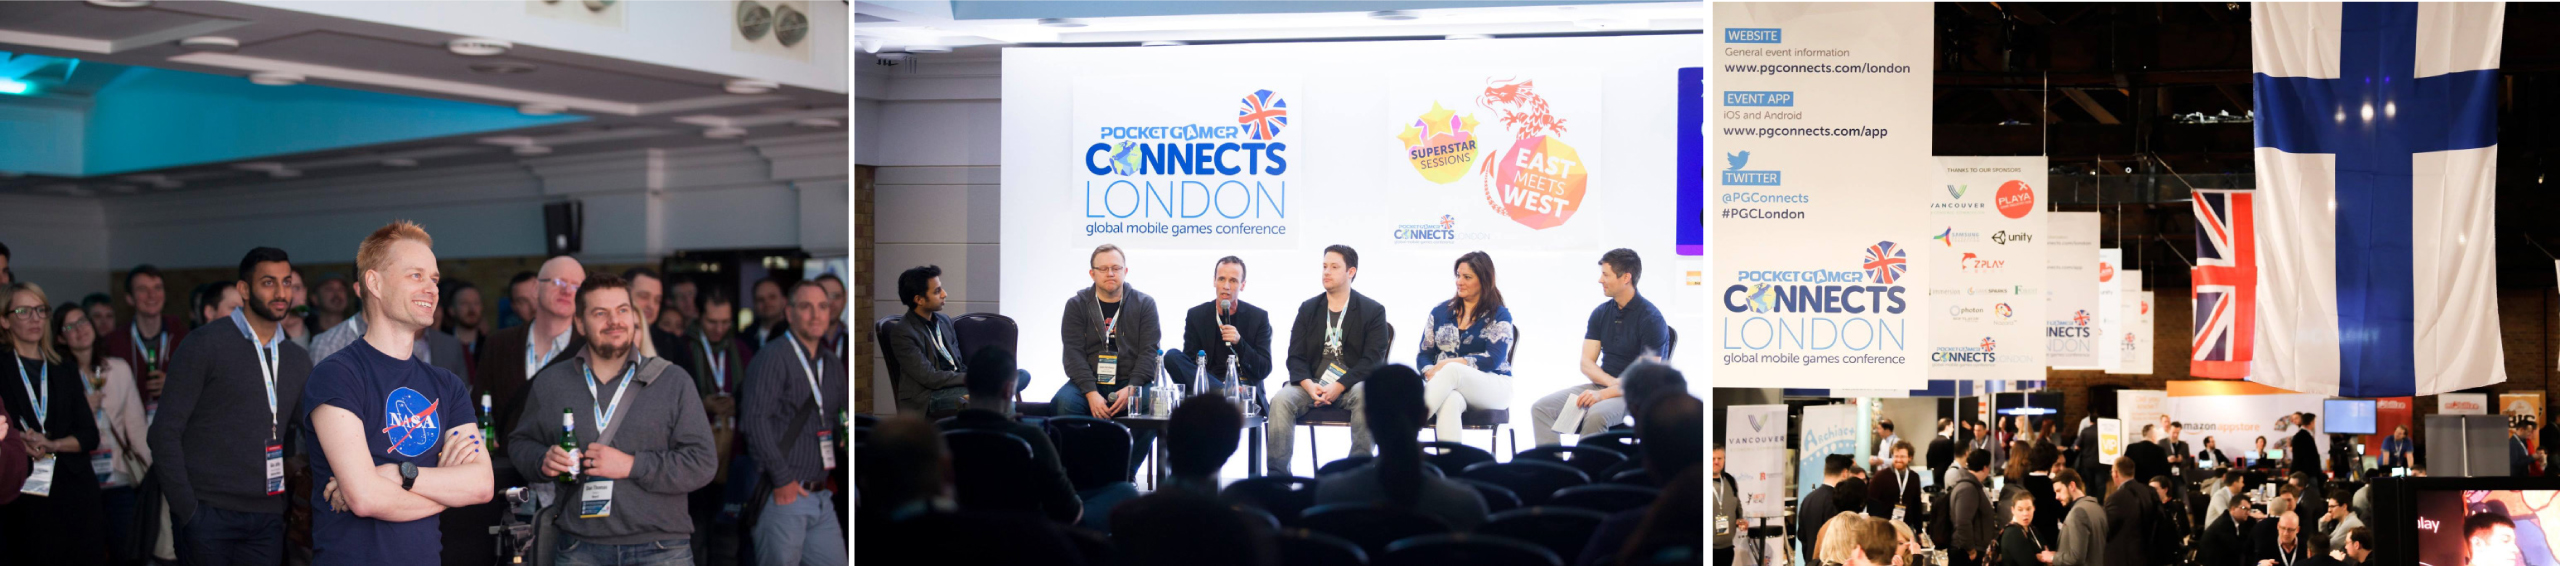 Back for 2019, the Level Up: Vancouver, British Columbia pavilion, jointly organized by the Province of British Columbia and the Vancouver Economic Commission, brings together top studios from Vancouver and British Columbia to showcase and network at the PG Connects mobile and VR/AR games conference in London.